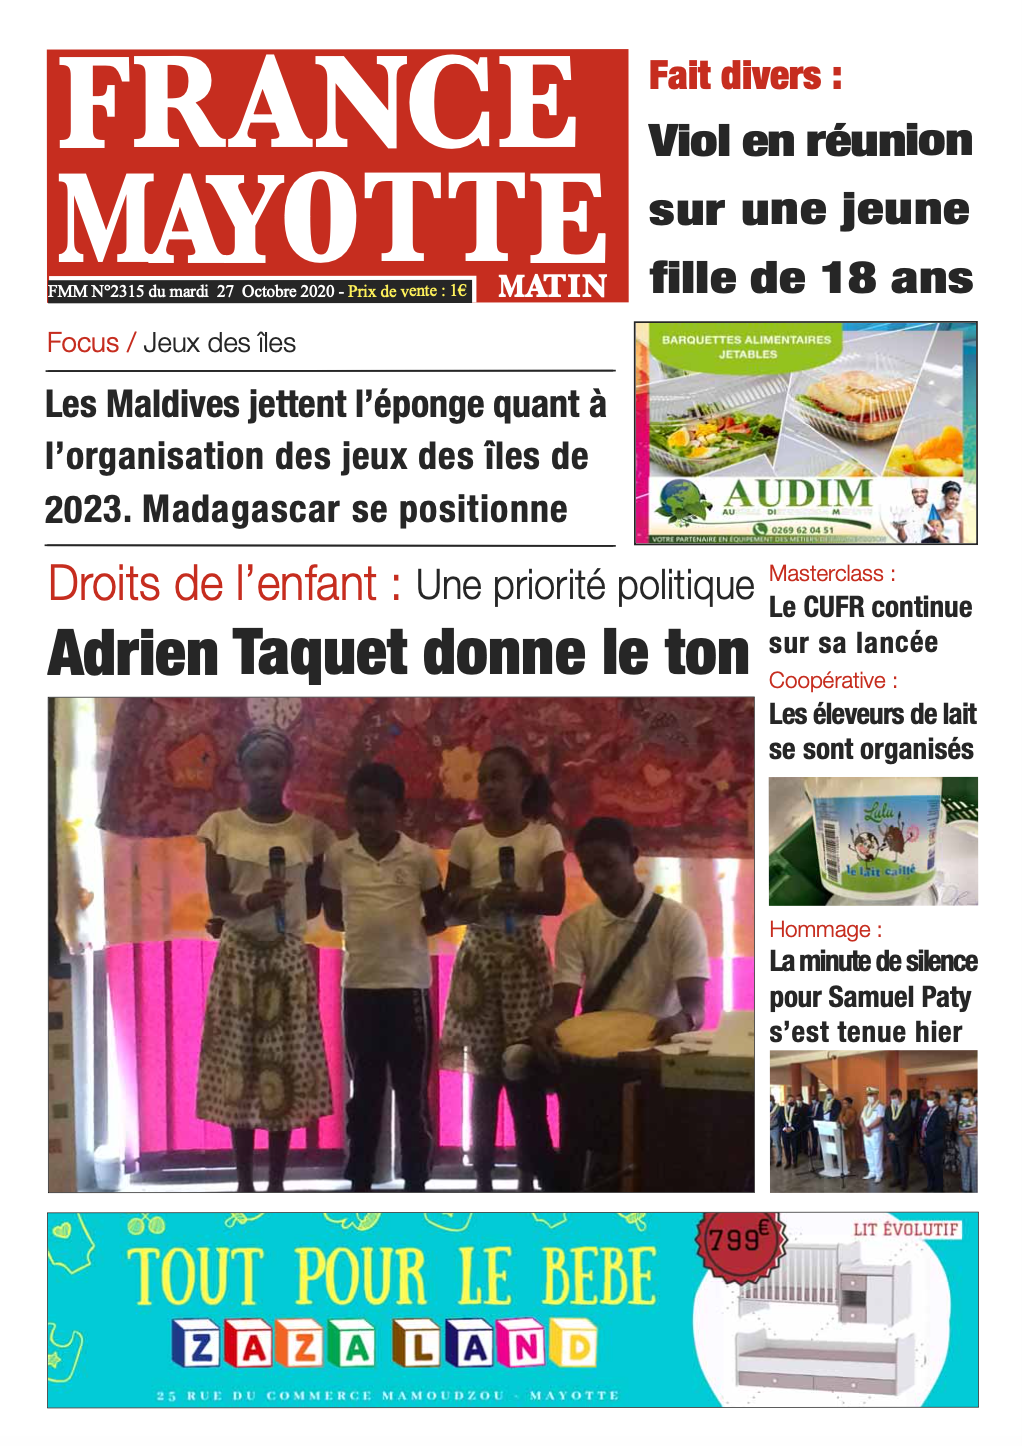 France Mayotte Mardi 27 octobre 2020